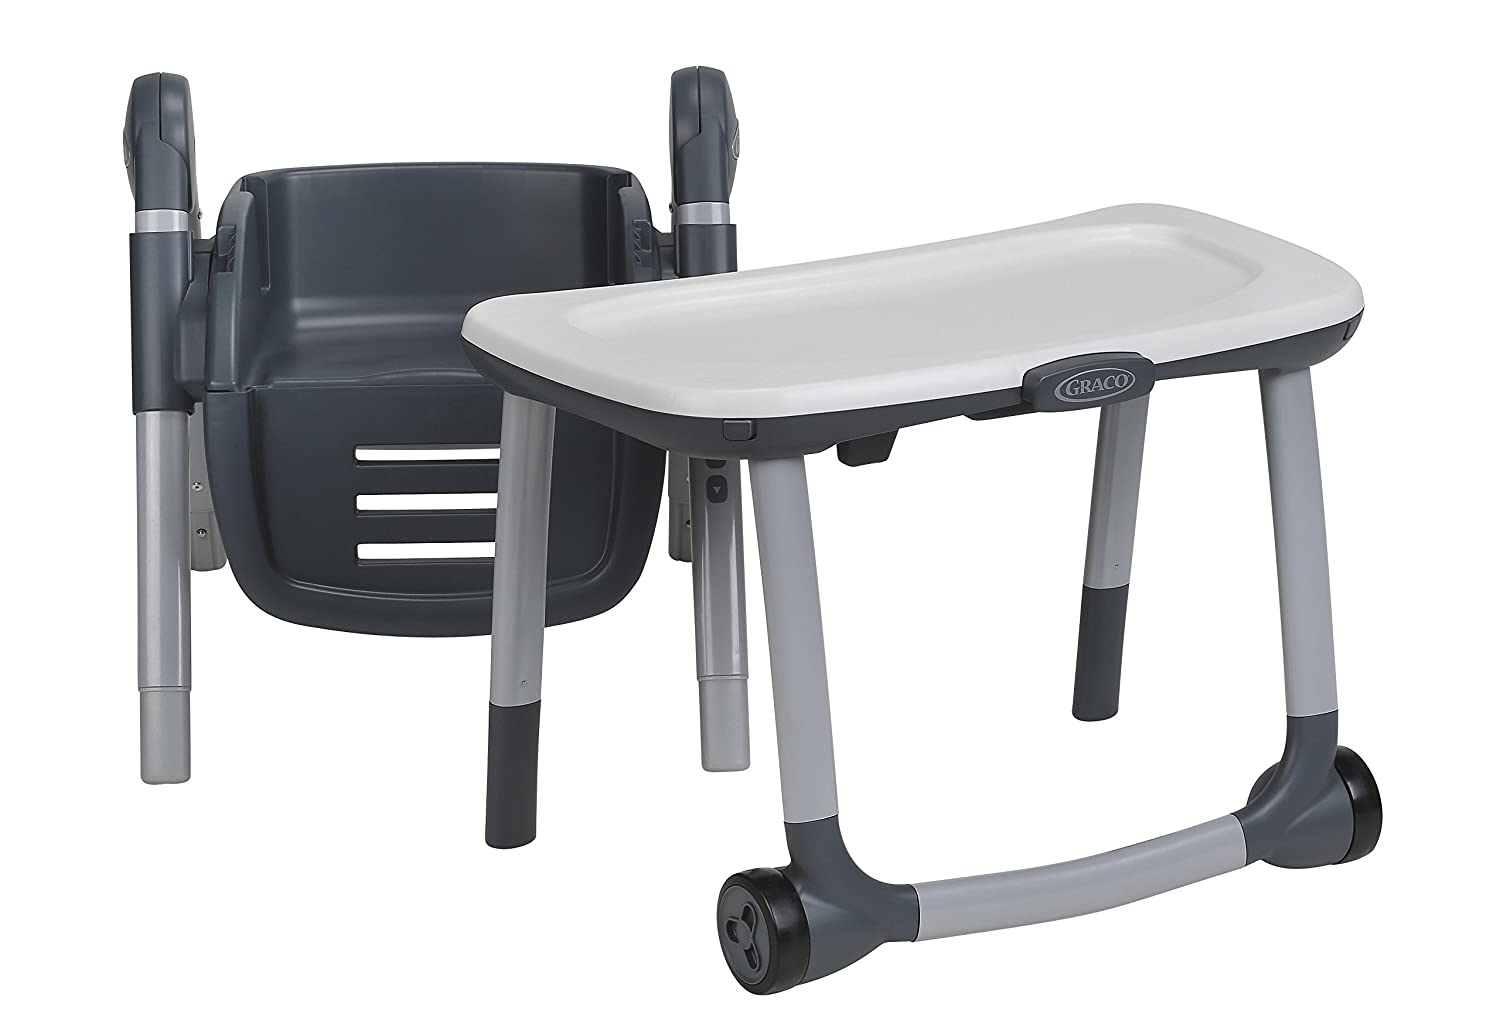 Graco Table 2 Table Premier Fold 7-in-1 Highchair Albie